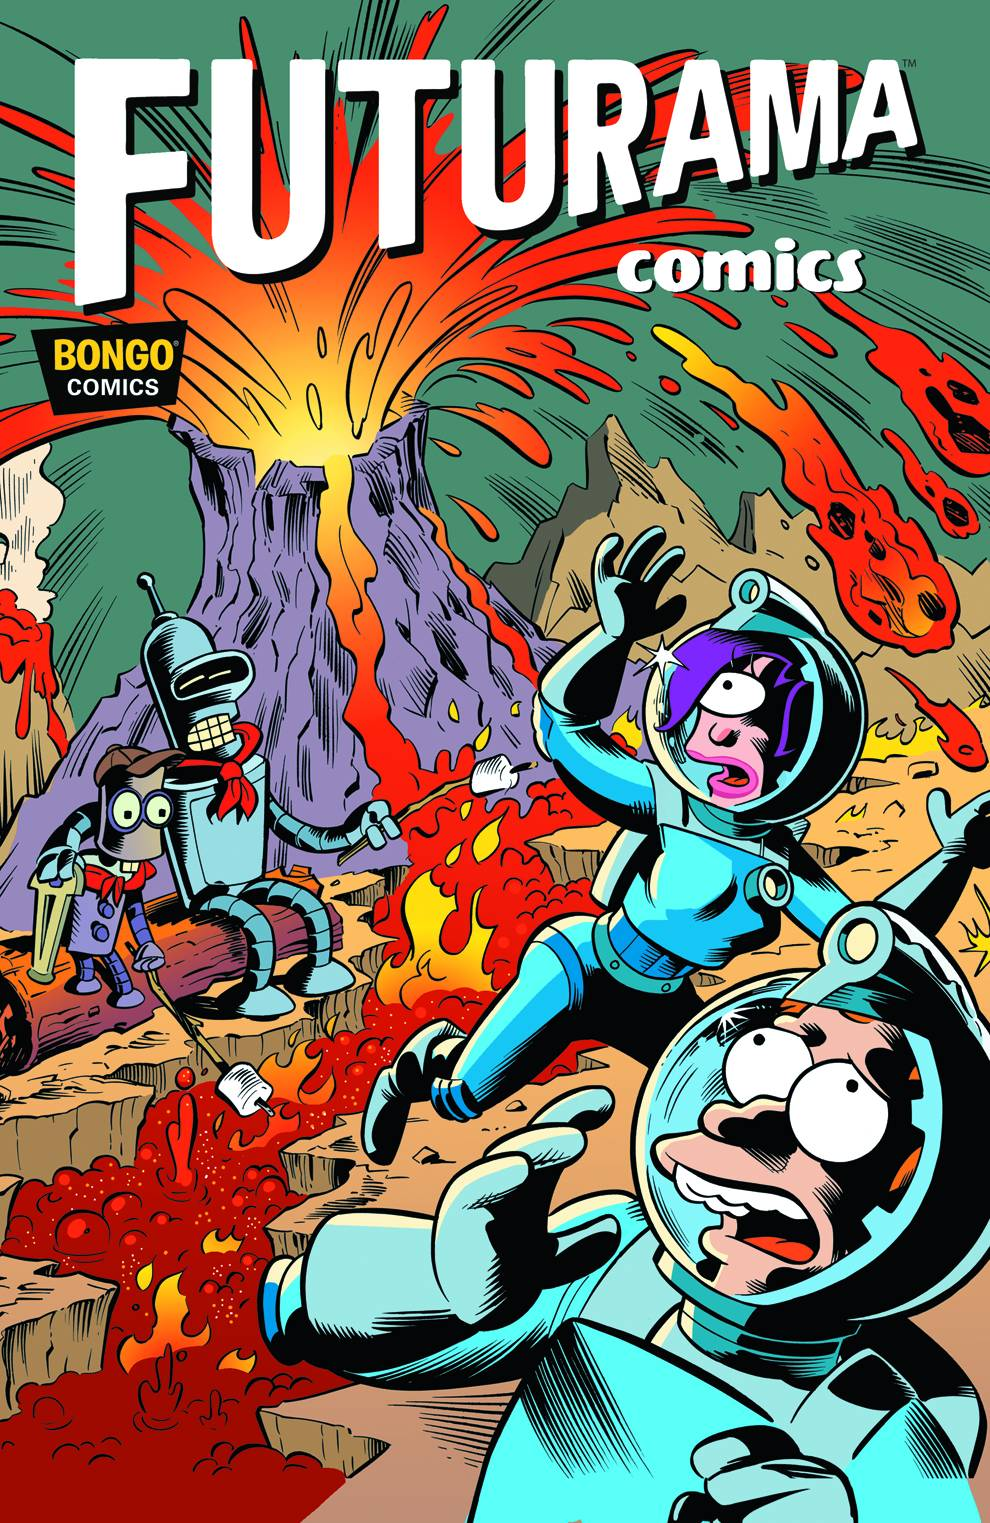 Futurama Comics welcome to up up & away! the comic book lover's comic shop